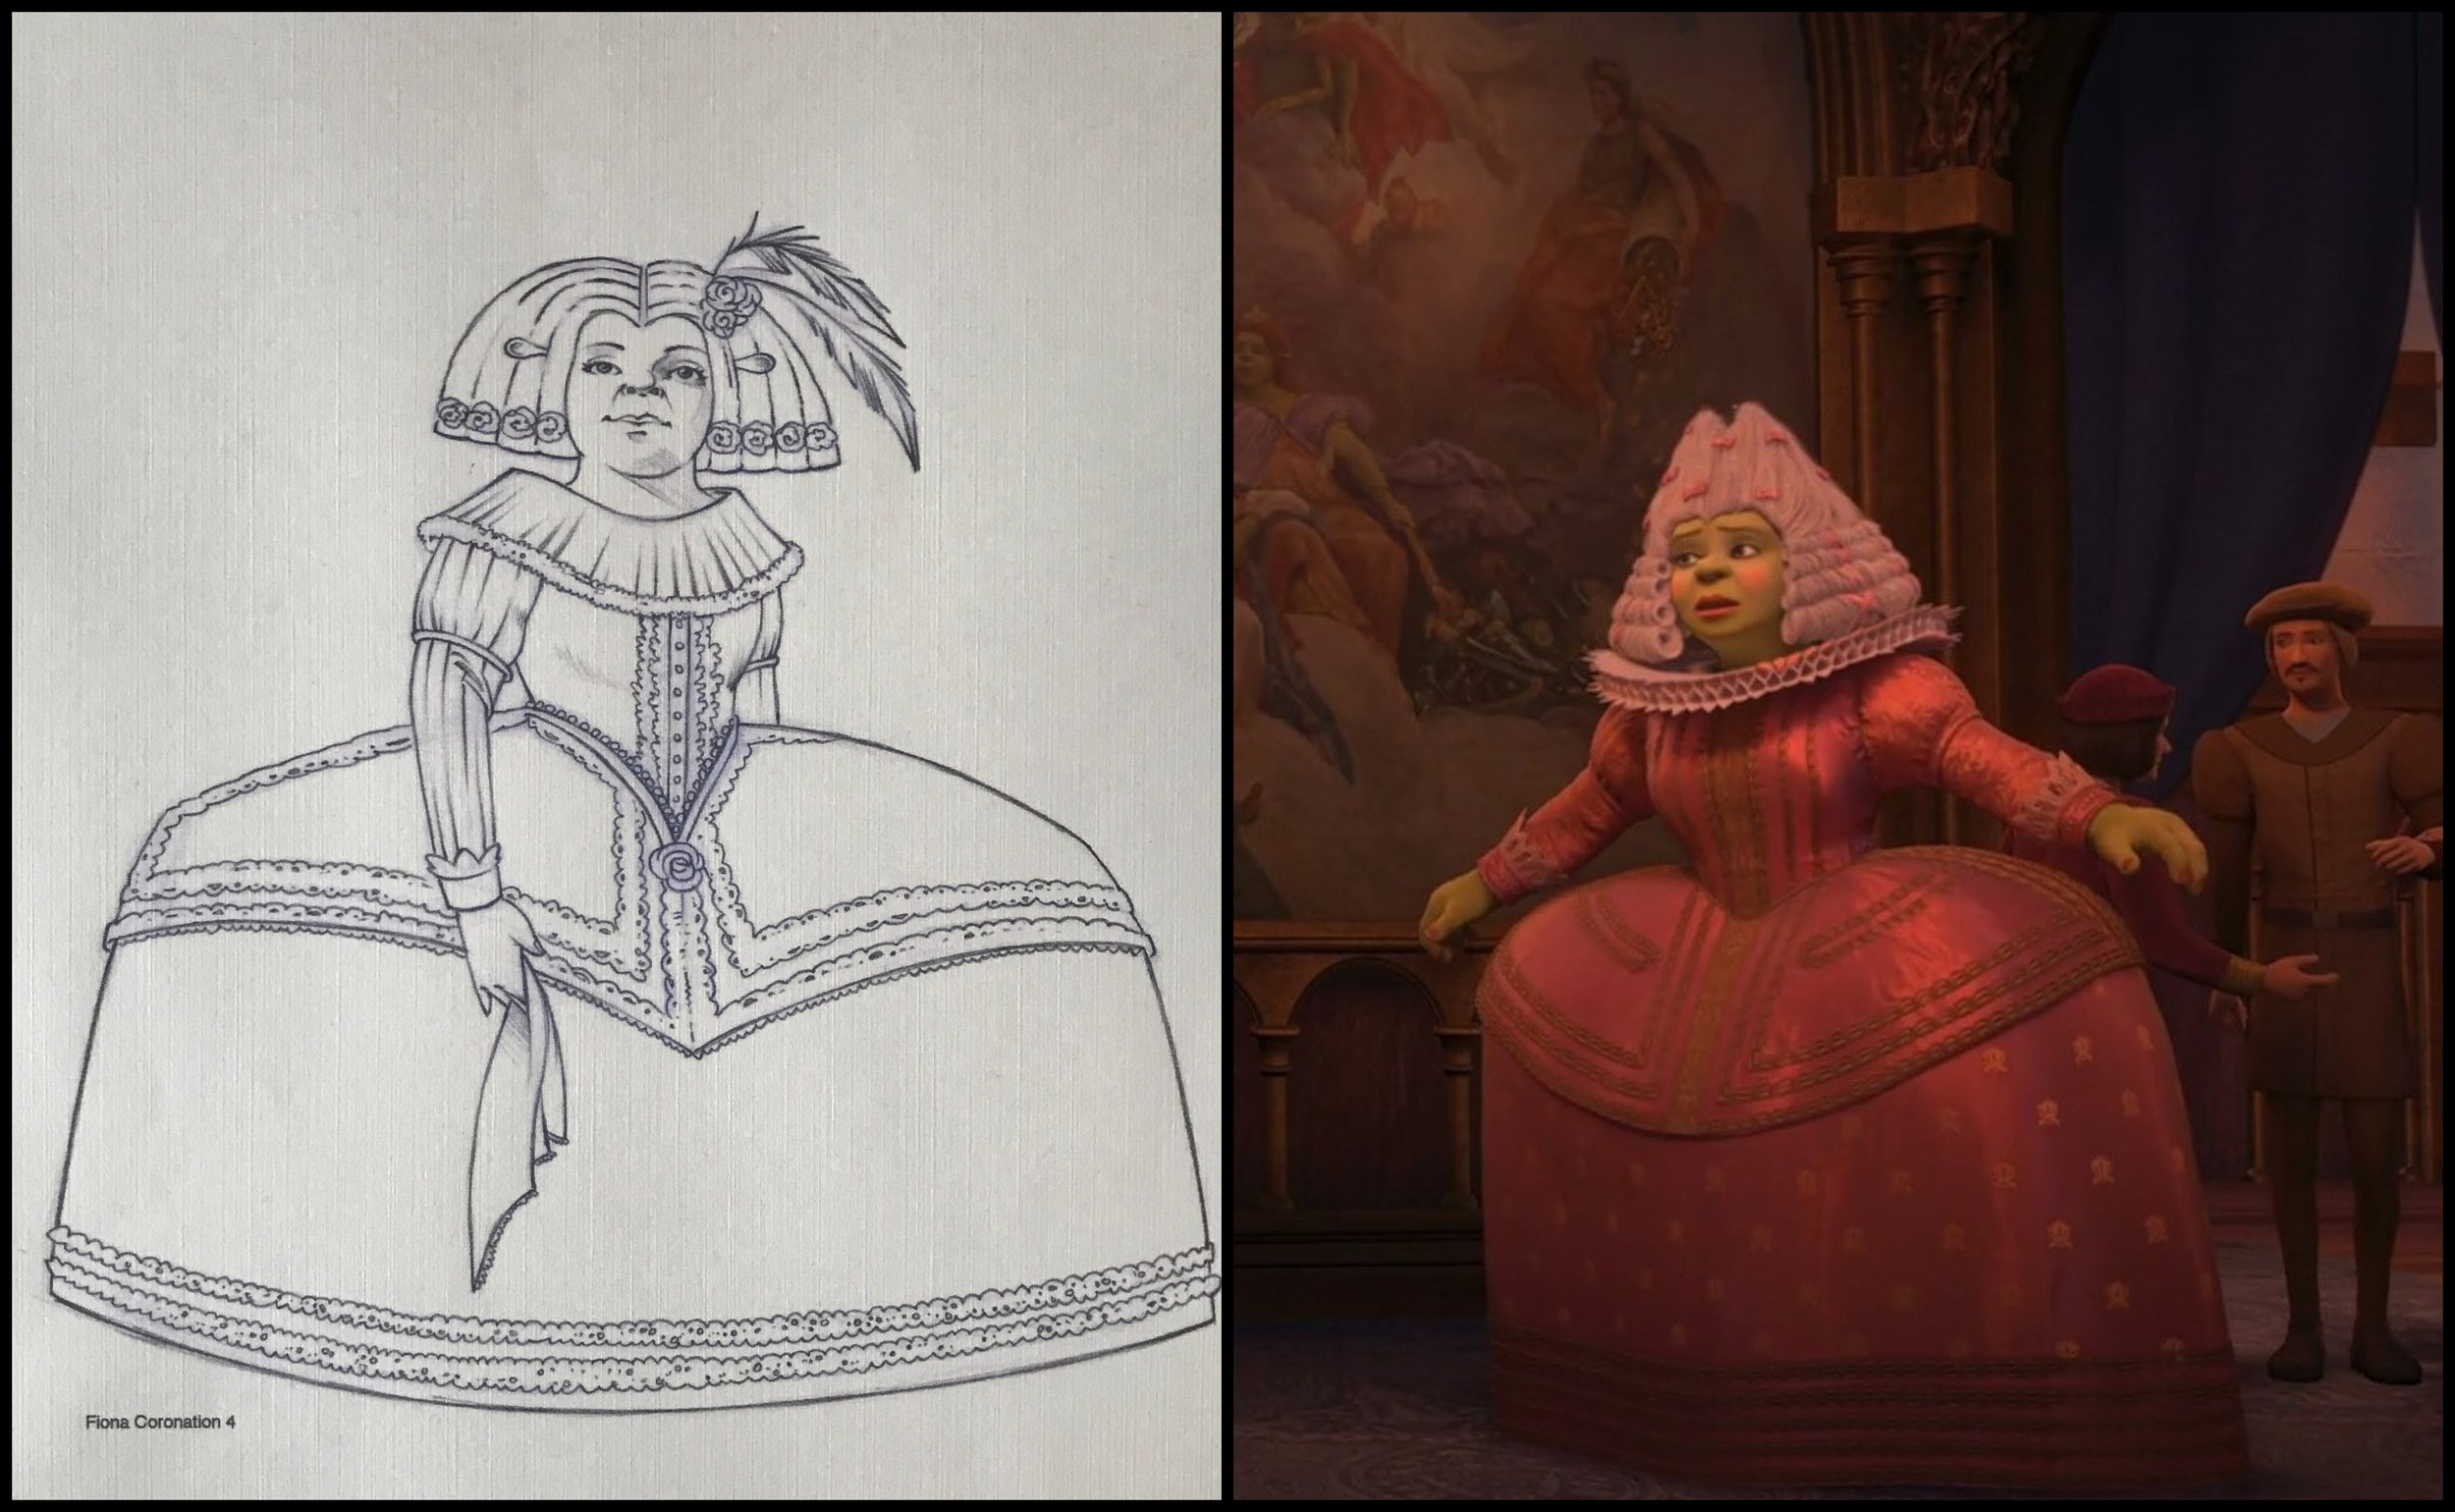 Figs. 2 & 3 - Israel Segal's costume rendering for character Fiona in  Shrek the Third  (left), courtesy of Israel Segal. The end result of the costume combines historical fashions from different periods (right).